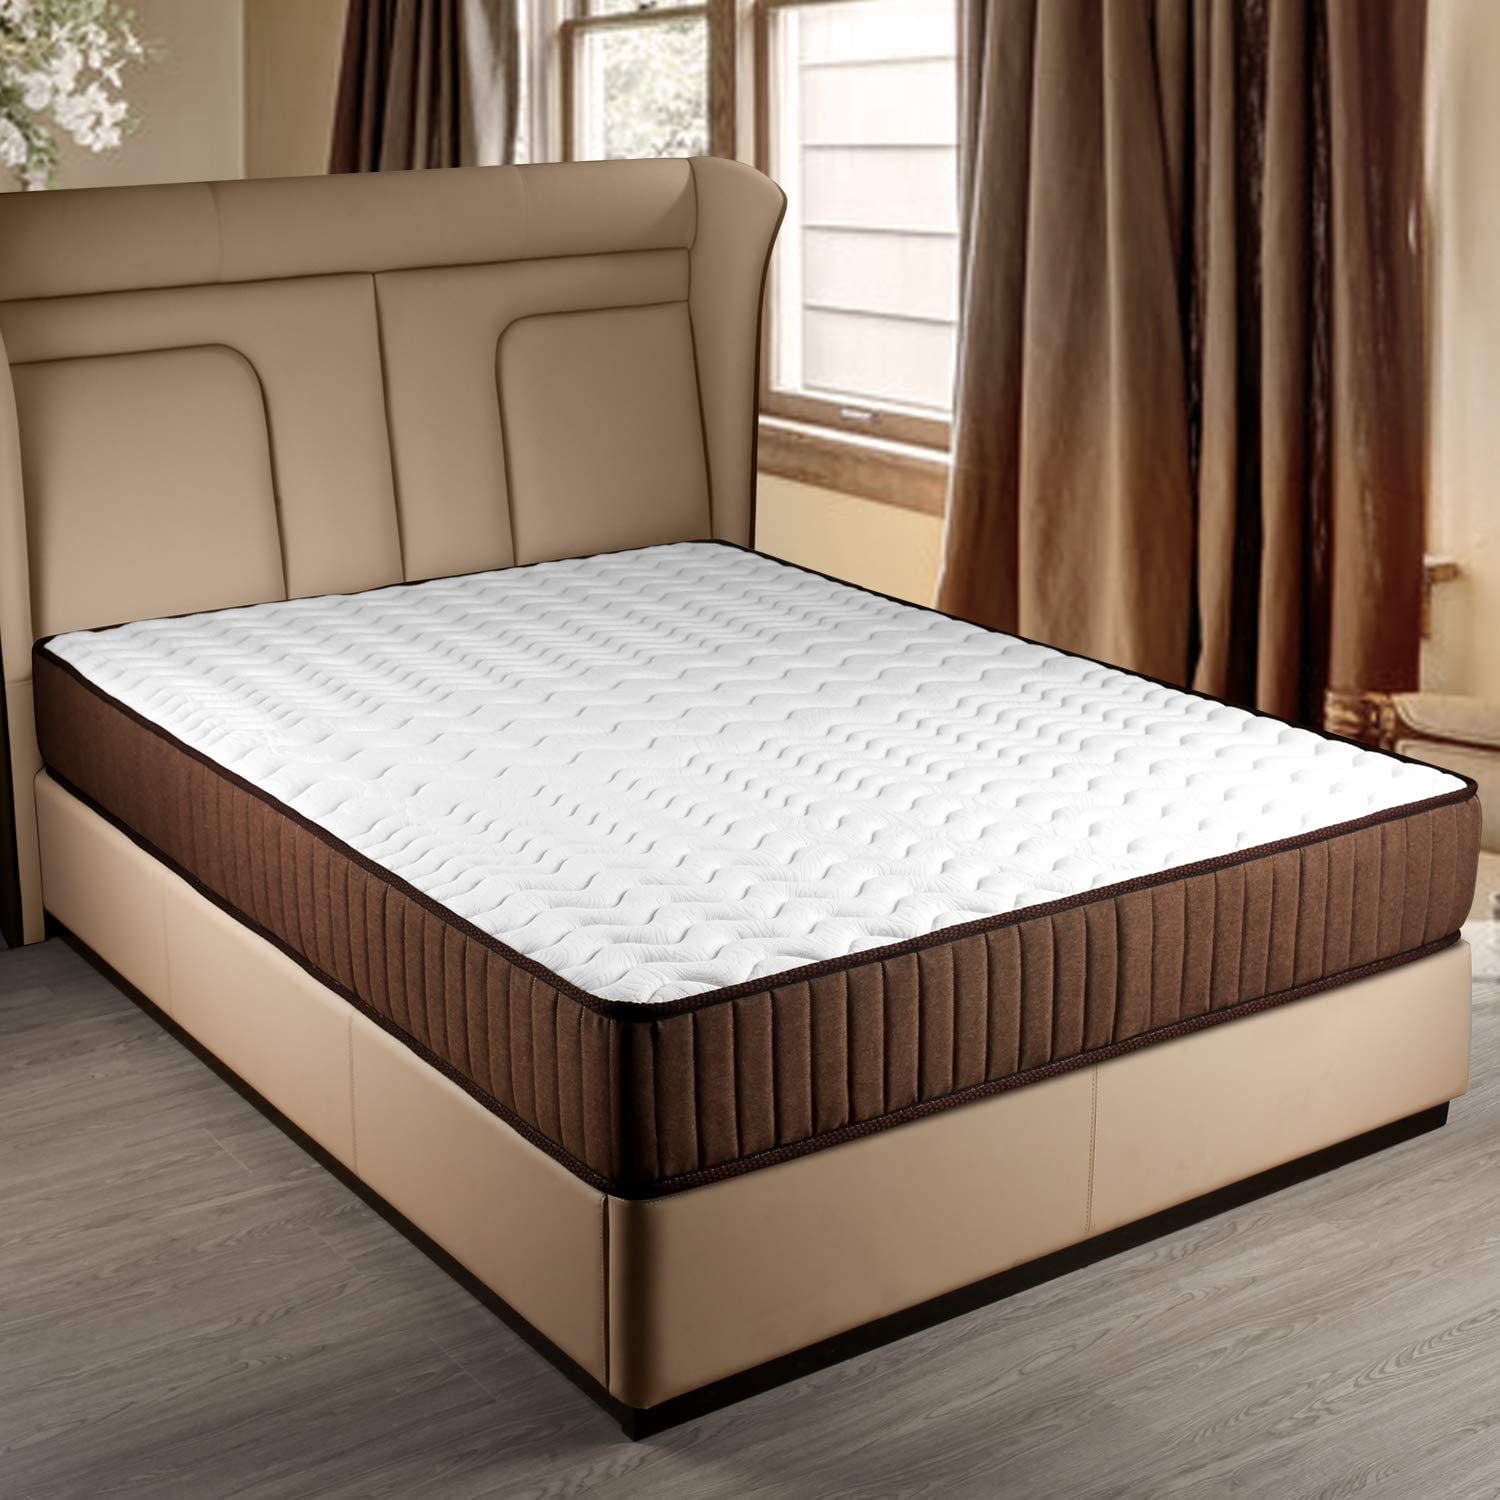 GENERAL ARMOR Memory Foam Mattress – Twin, 8 Inch, One Side Firm and One Side Soft Bed, Choose One fits You Twin